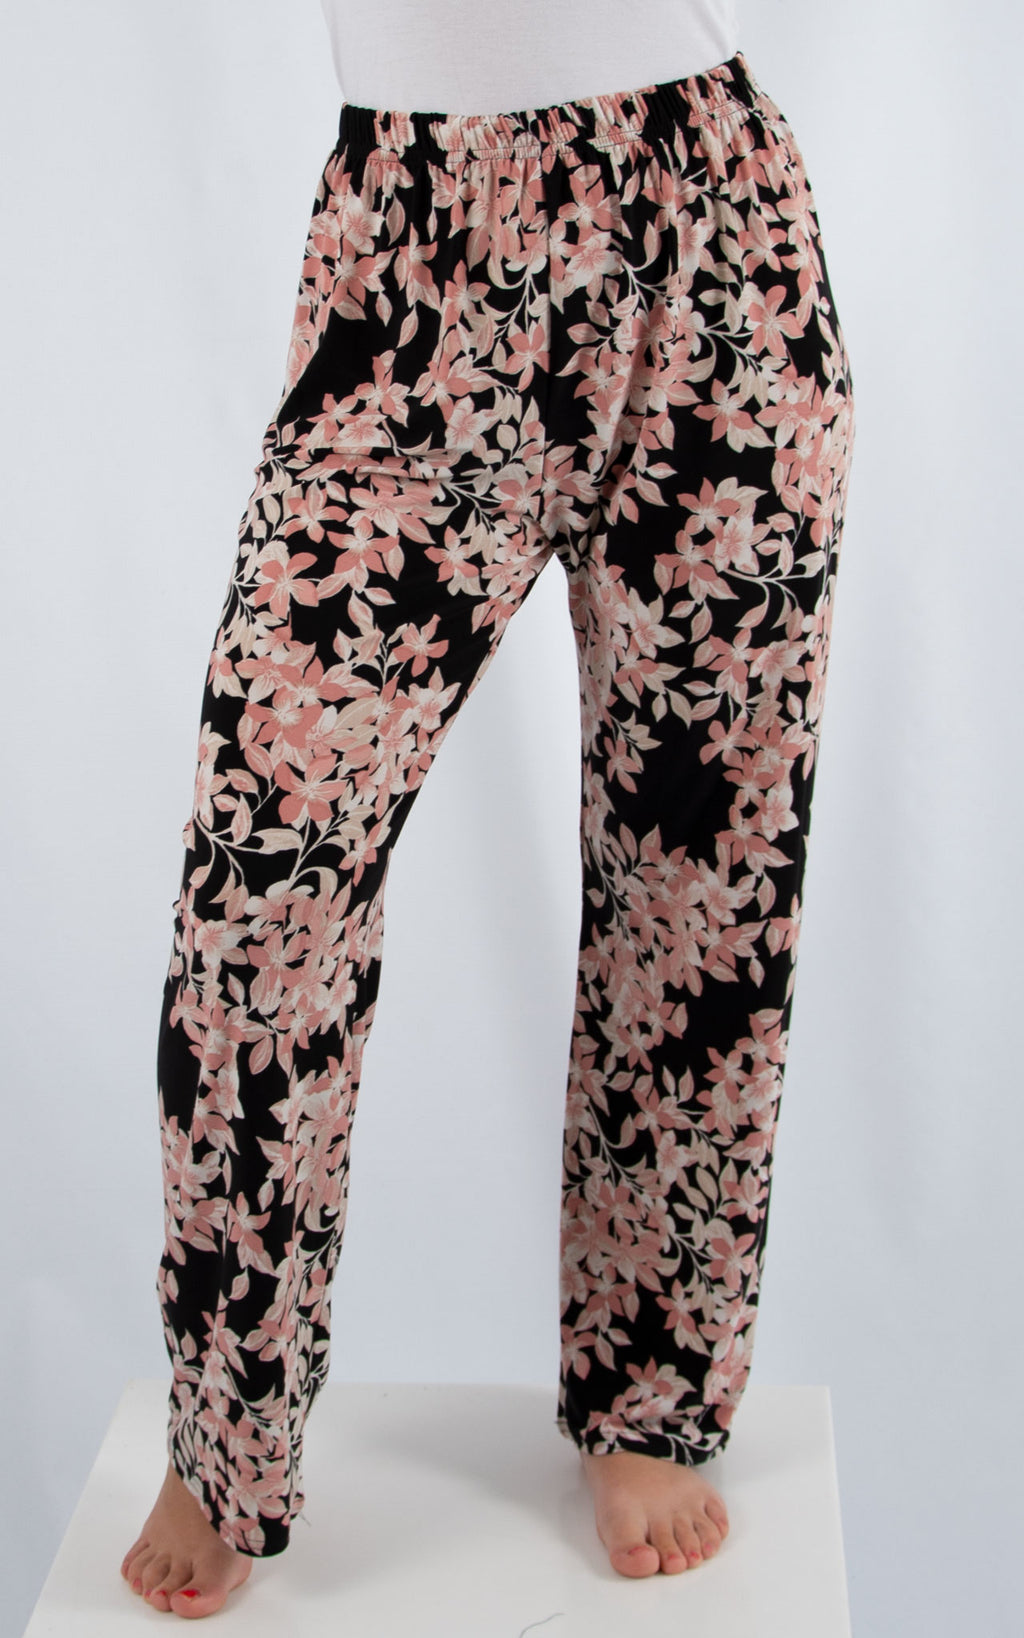 Pink Floral Patterned Trouser